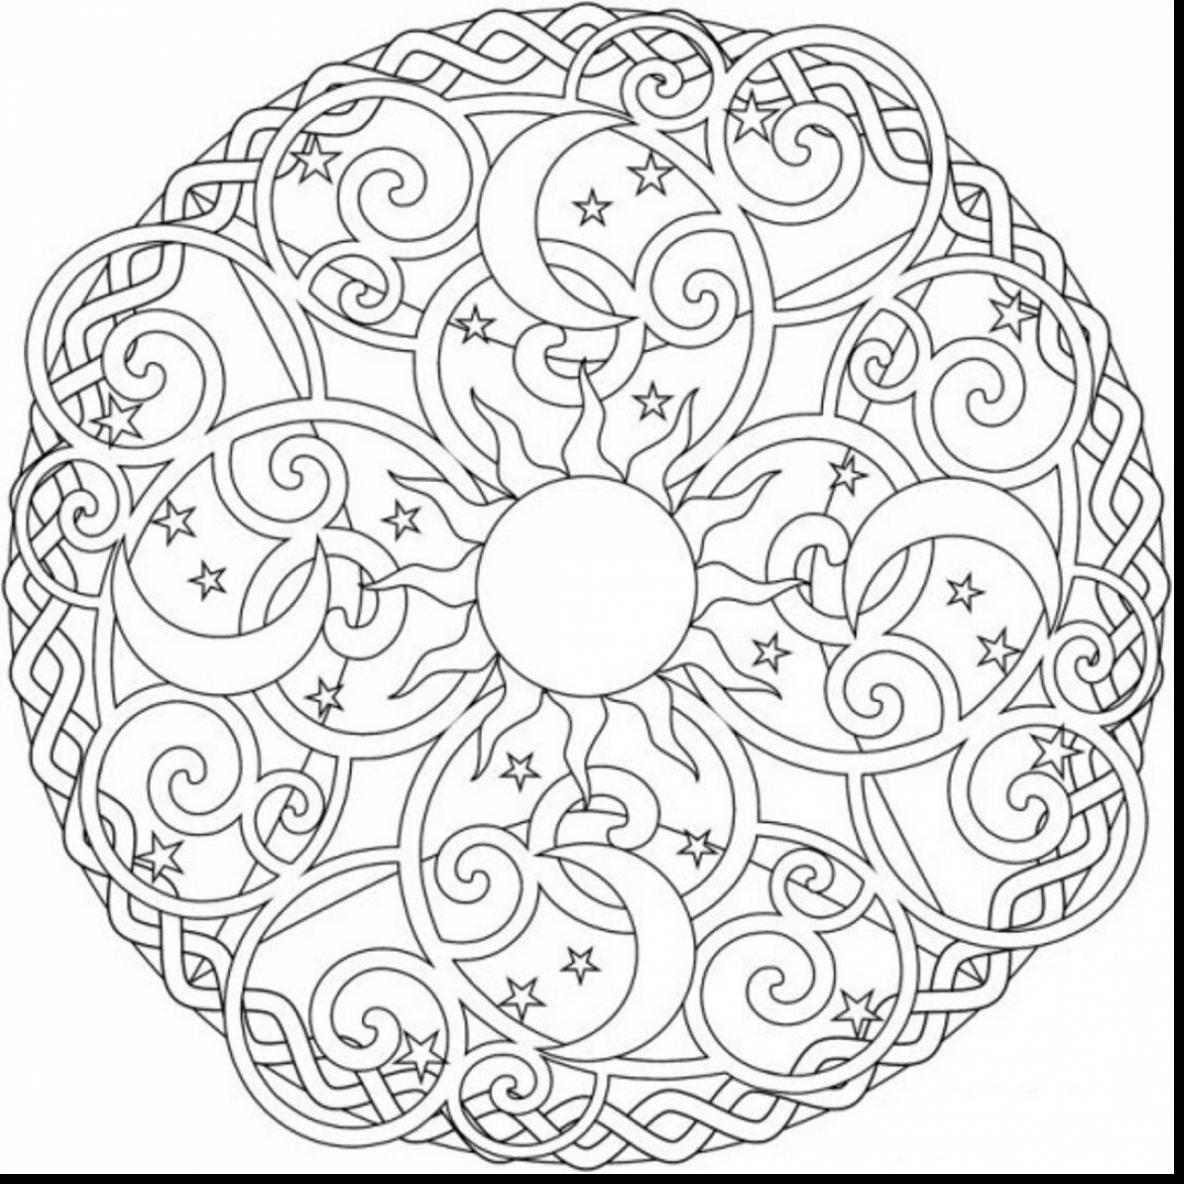 1184x1184 Mandala Coloring Pages Expert Level